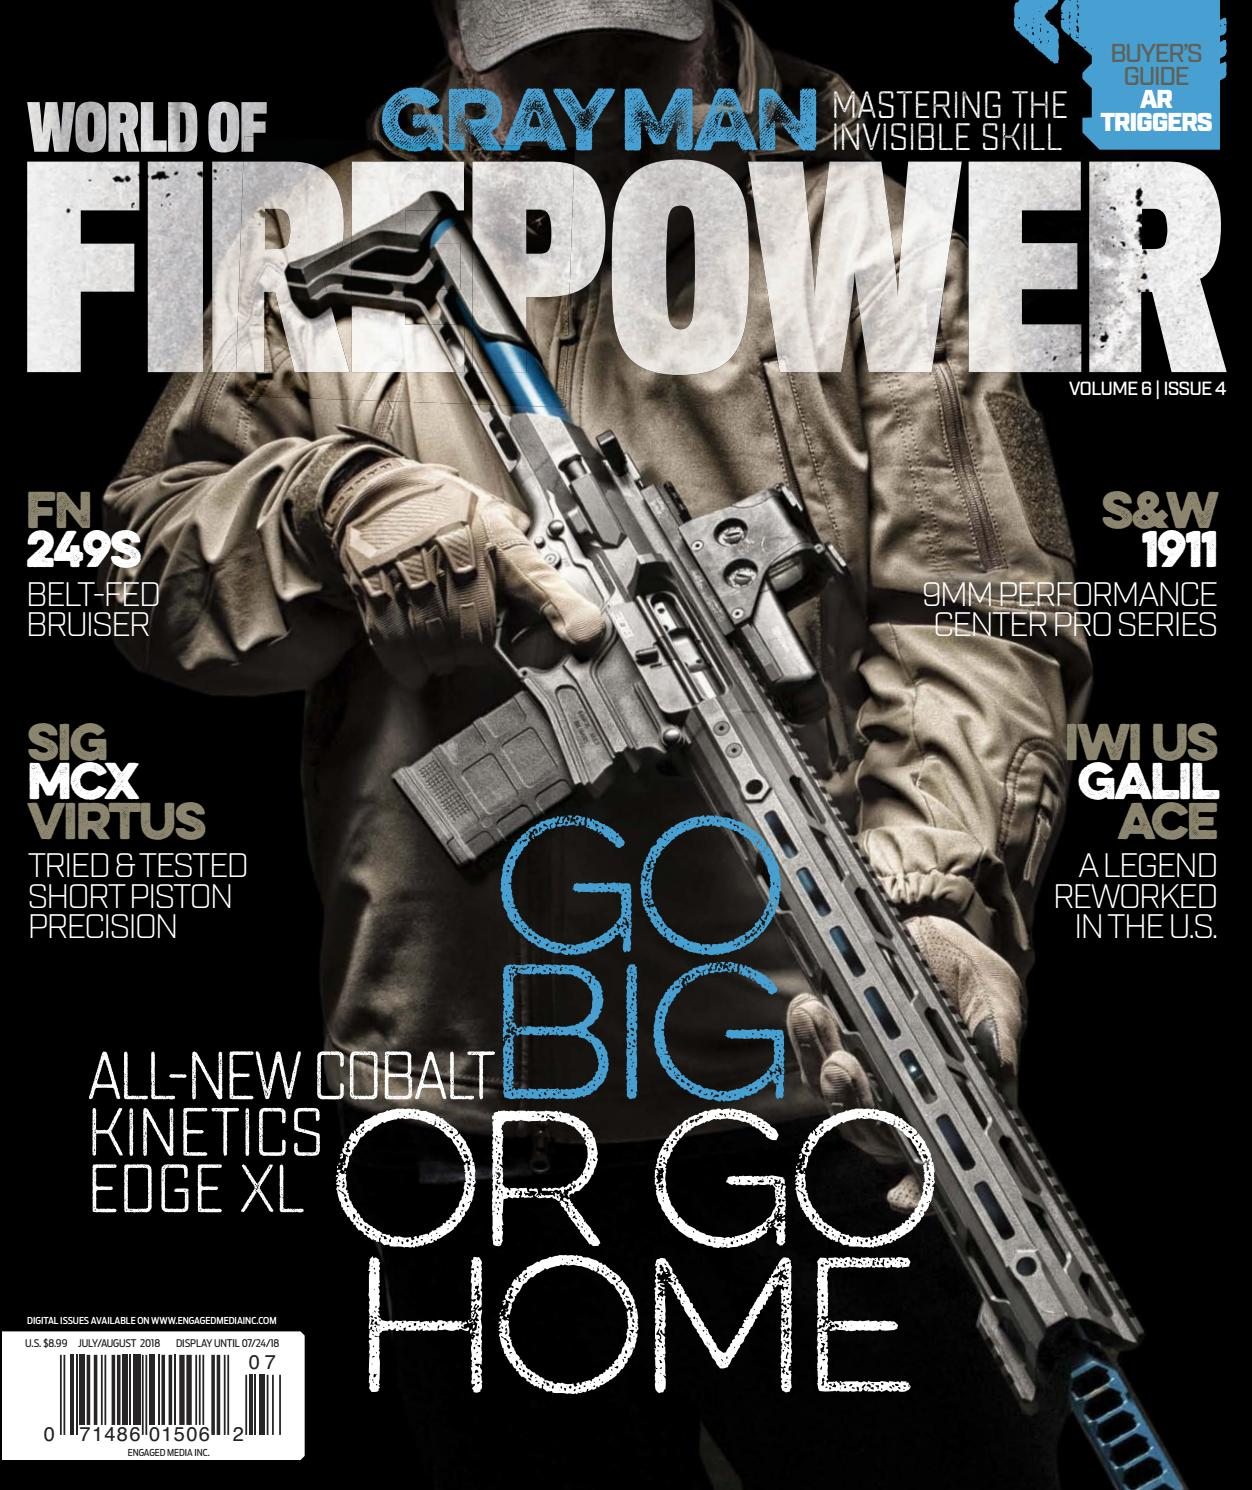 World of Firepower - July August 2018 by Vadim Koval - issuu